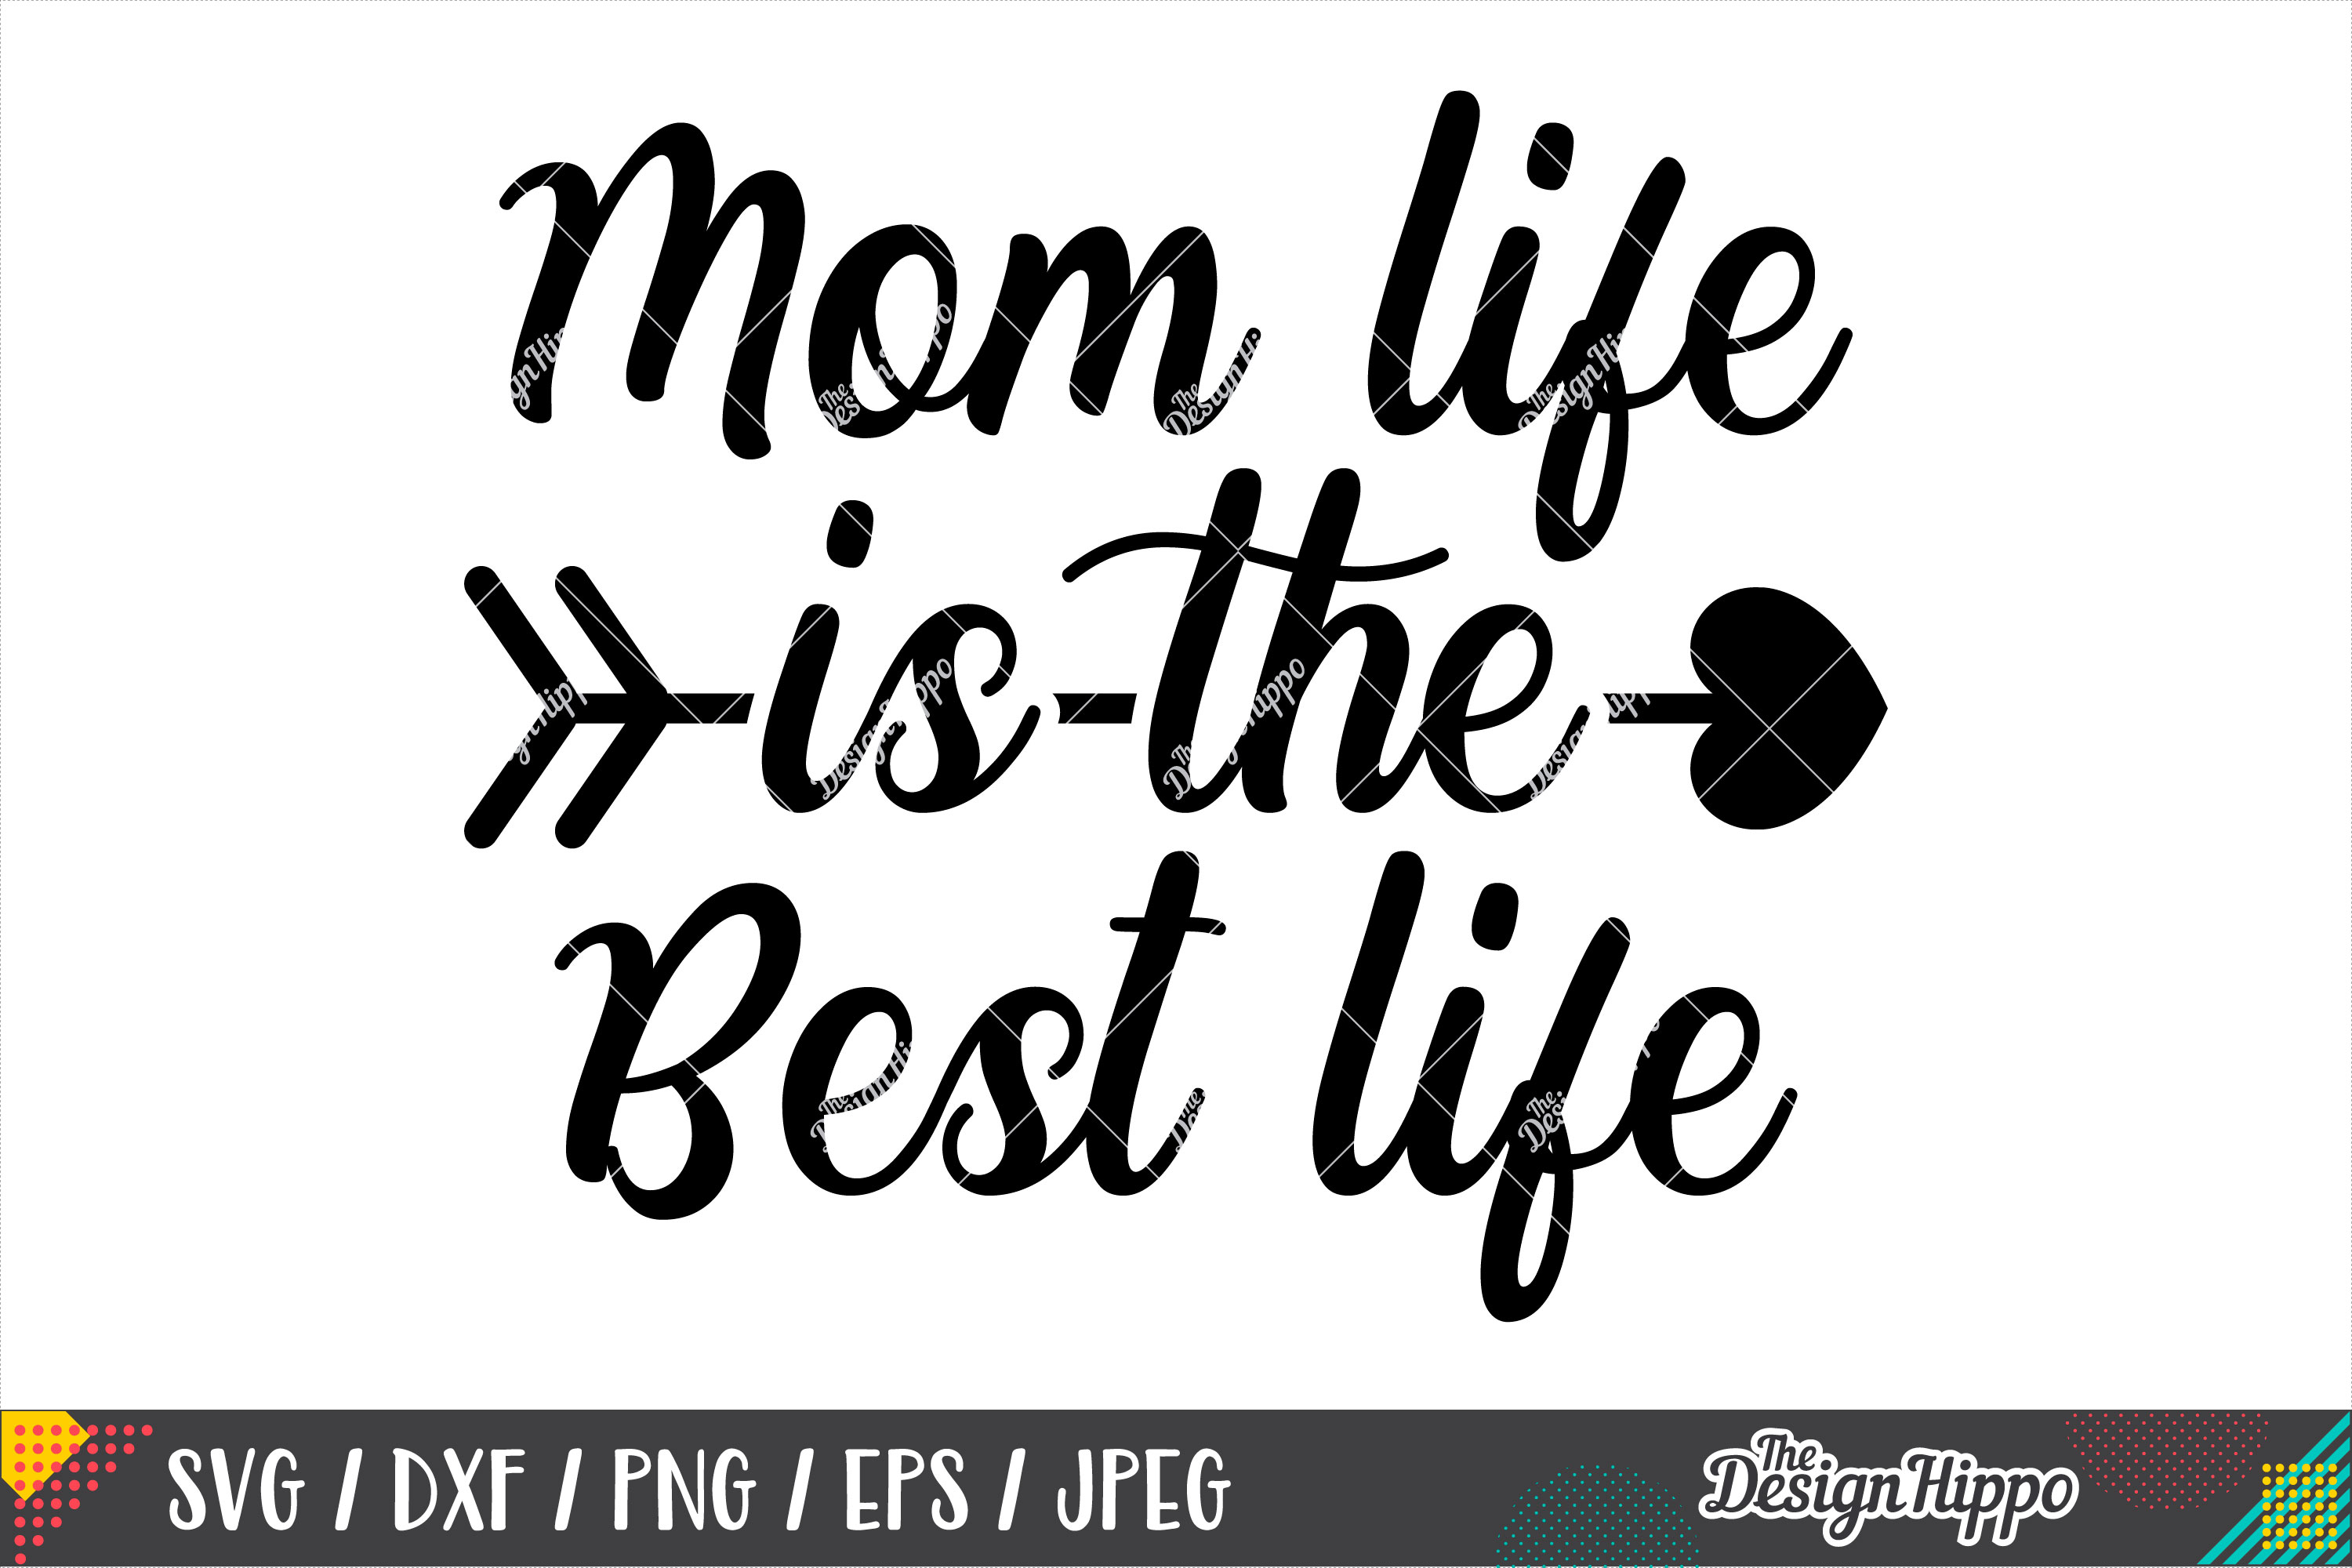 Mom Quotes SVG Bundle, 20 Designs, SVG PNG DXF Cutting Files example image 18